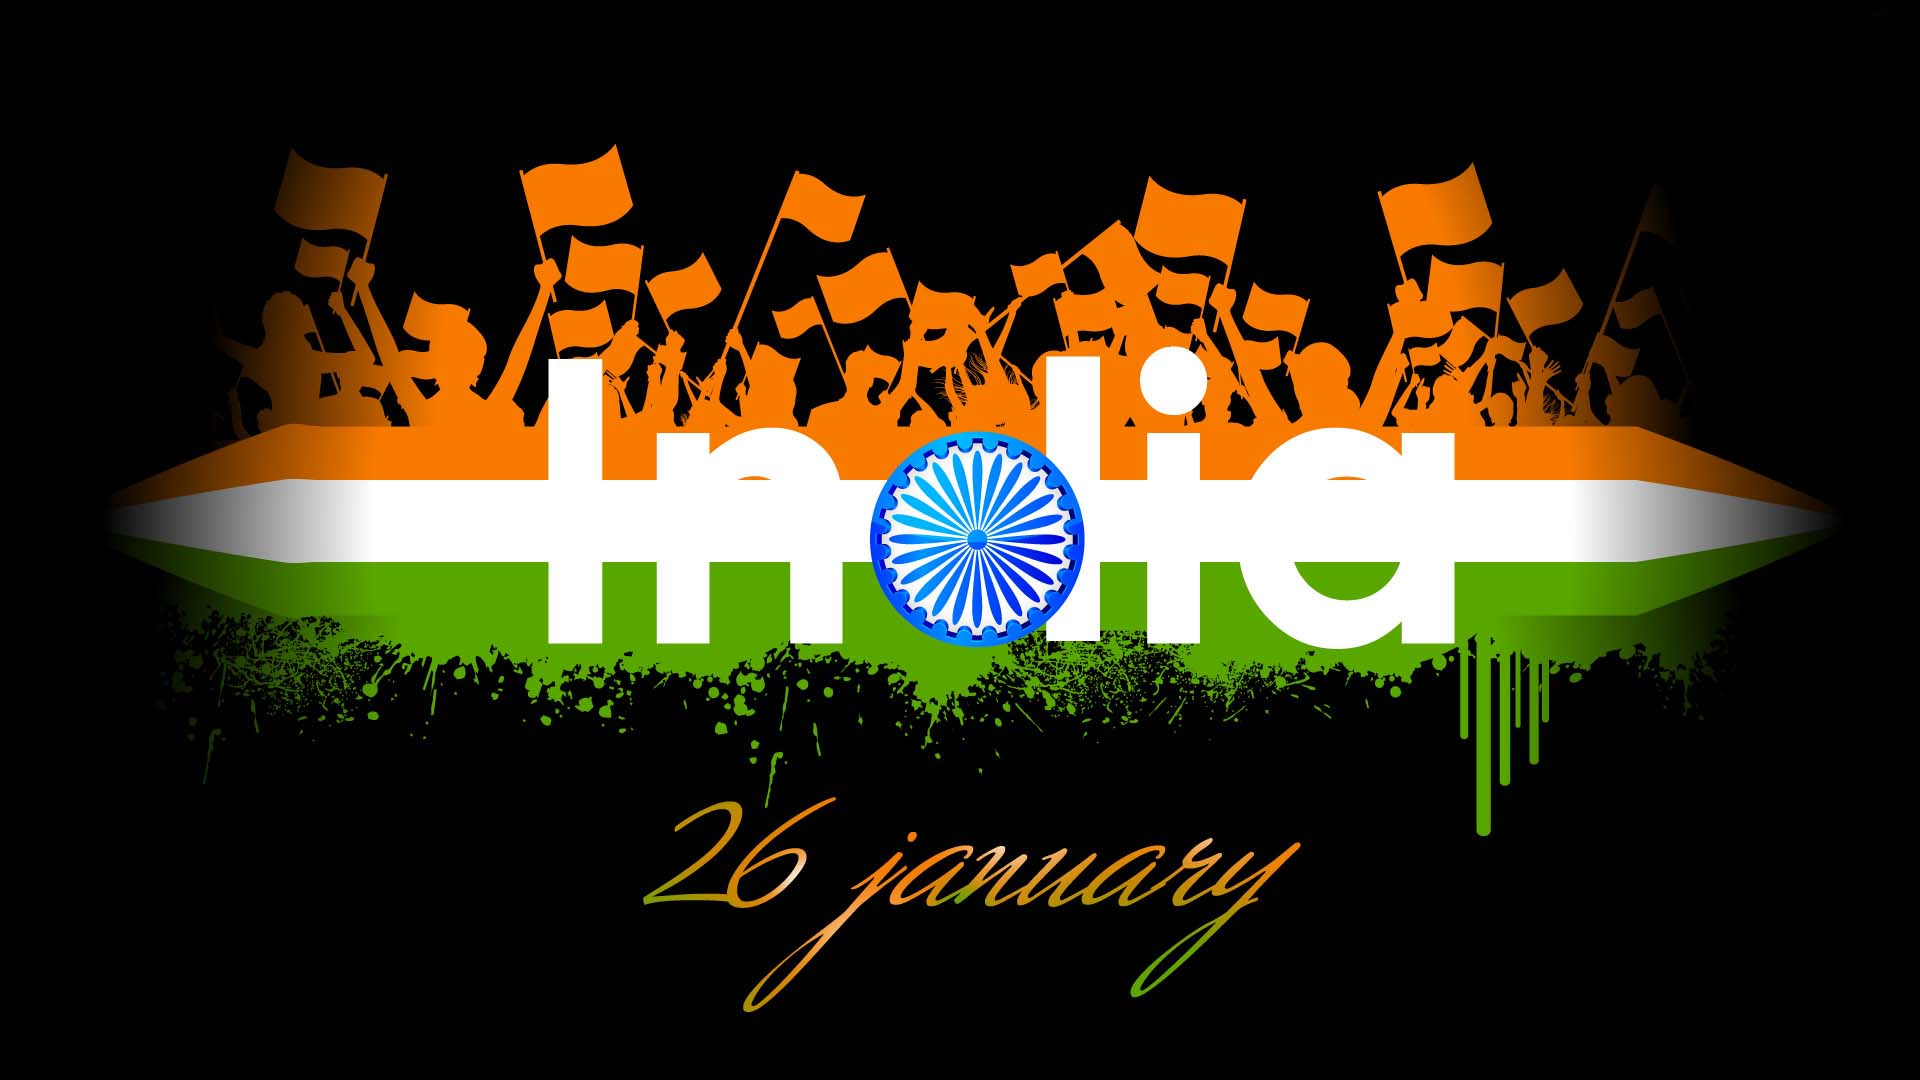 happy republic day in india with indian flag symbol | hd wallpapers